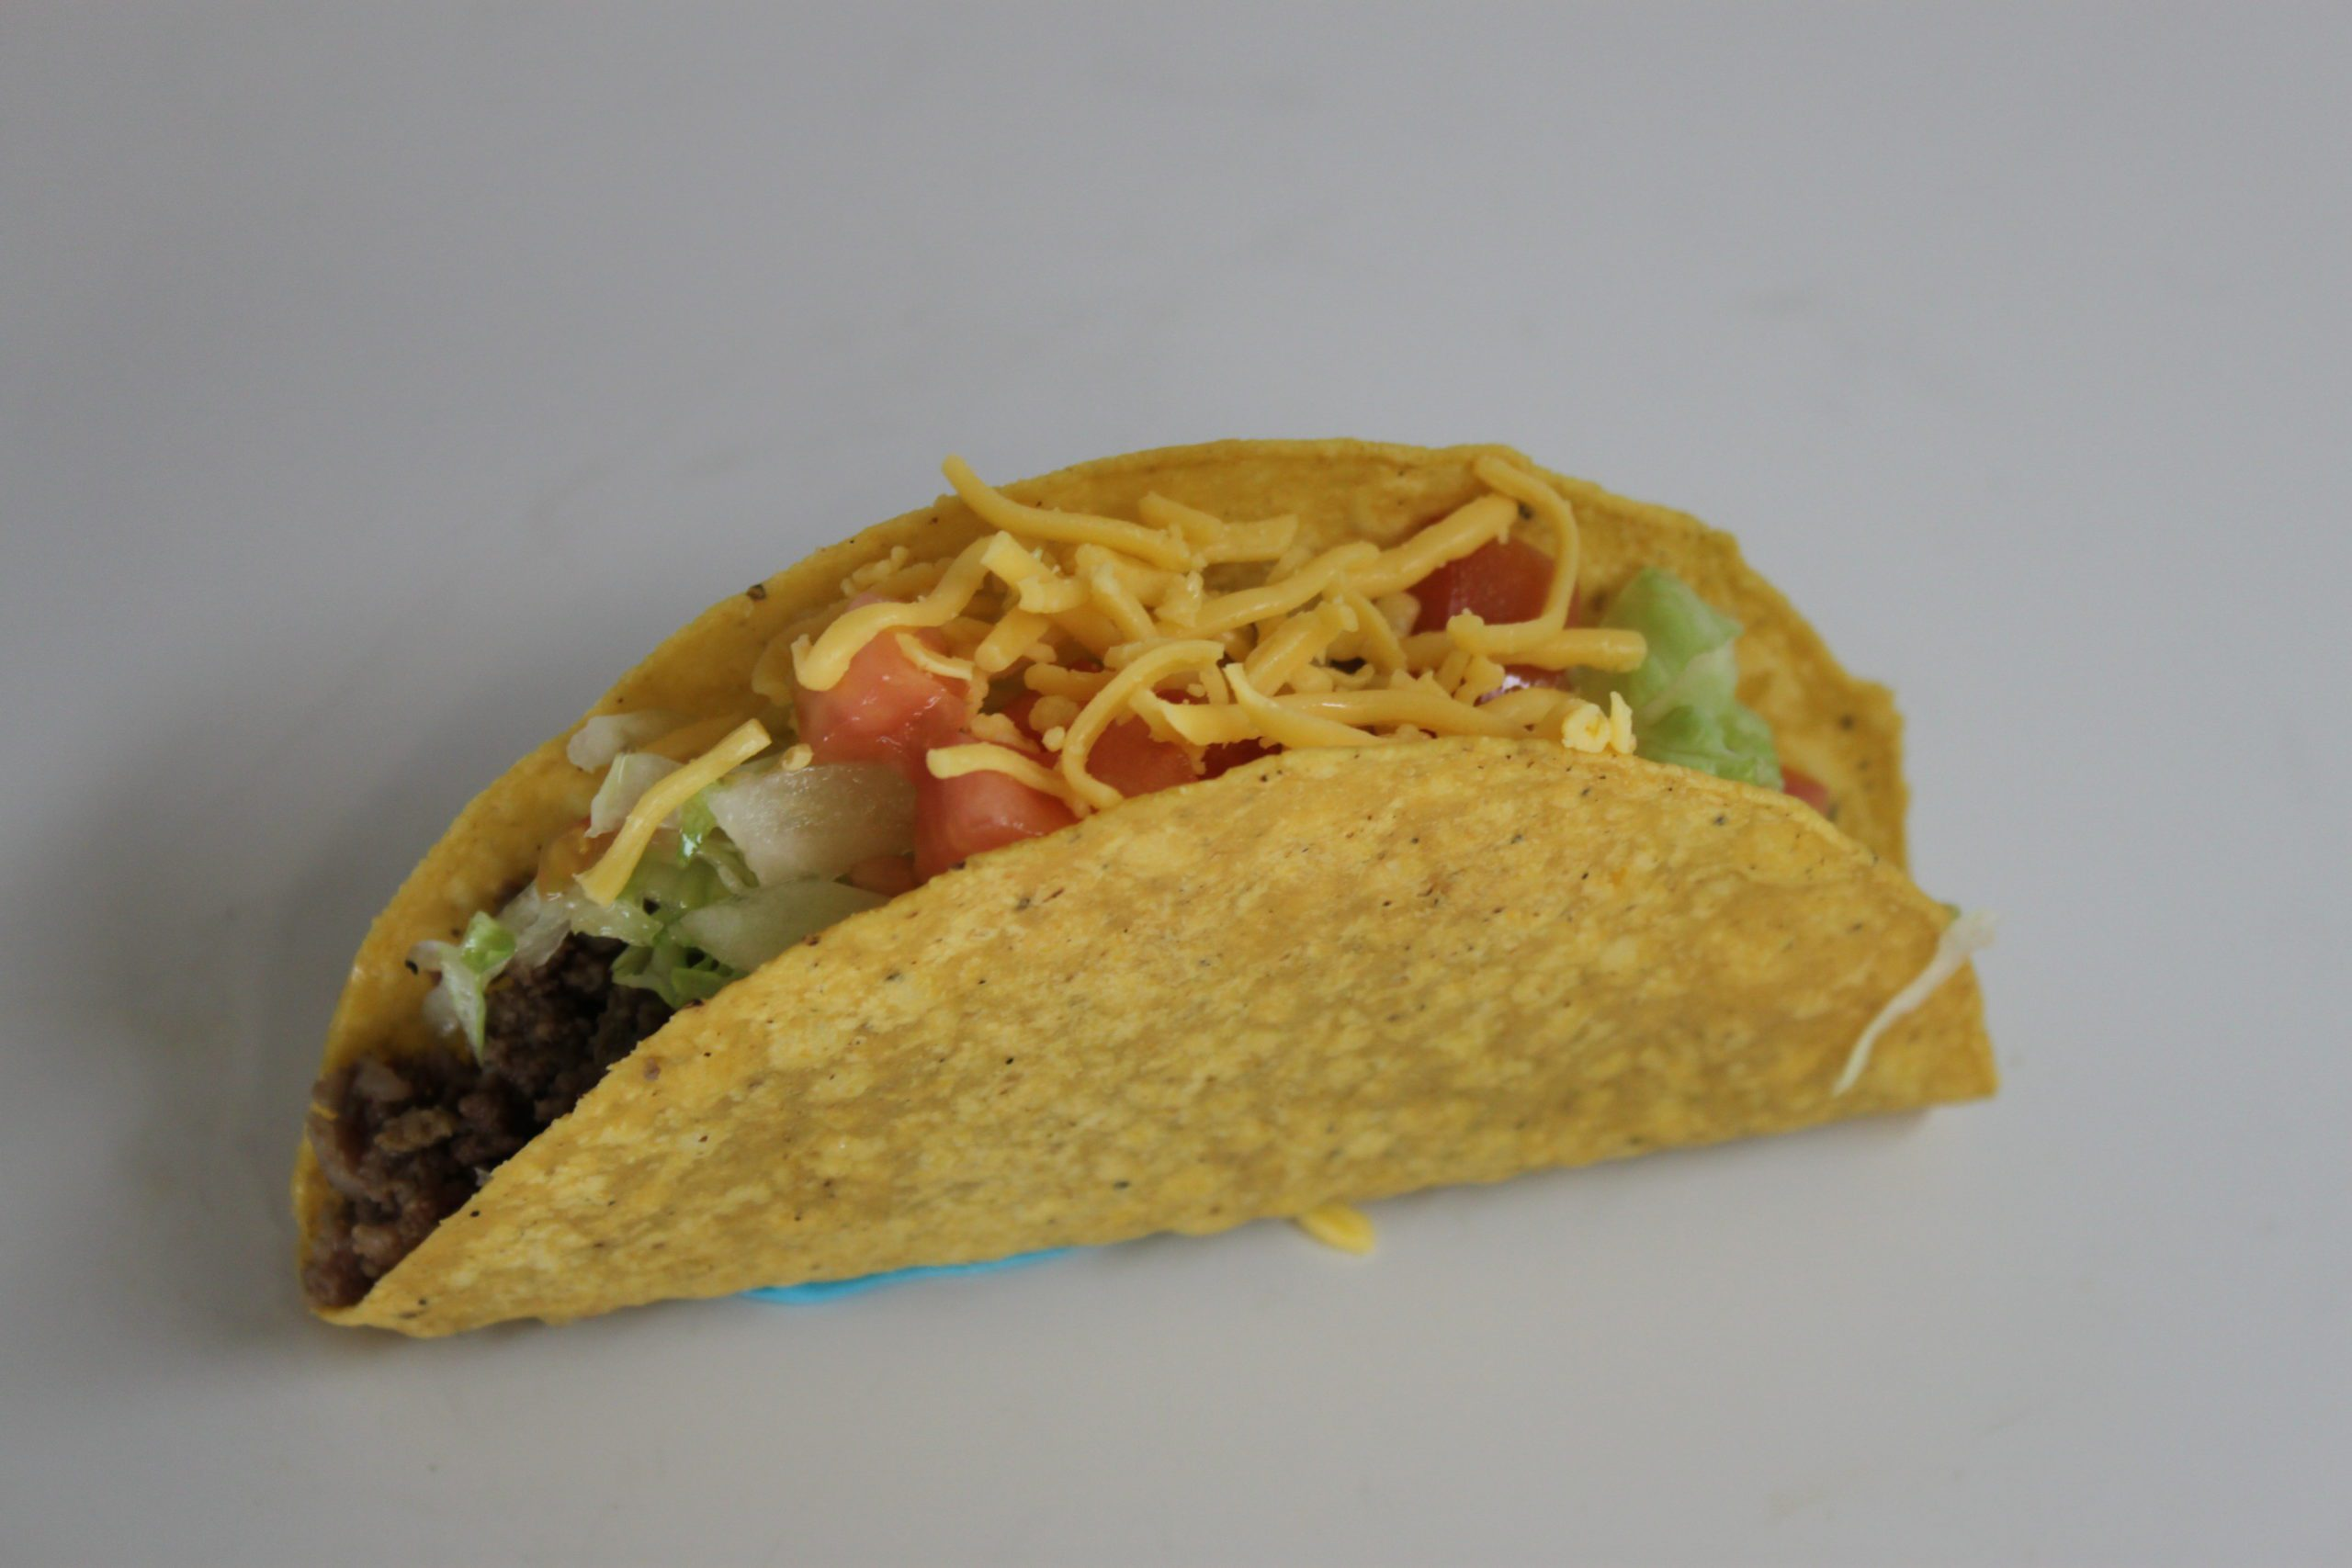 All American beef taco in a corn tortilla shell